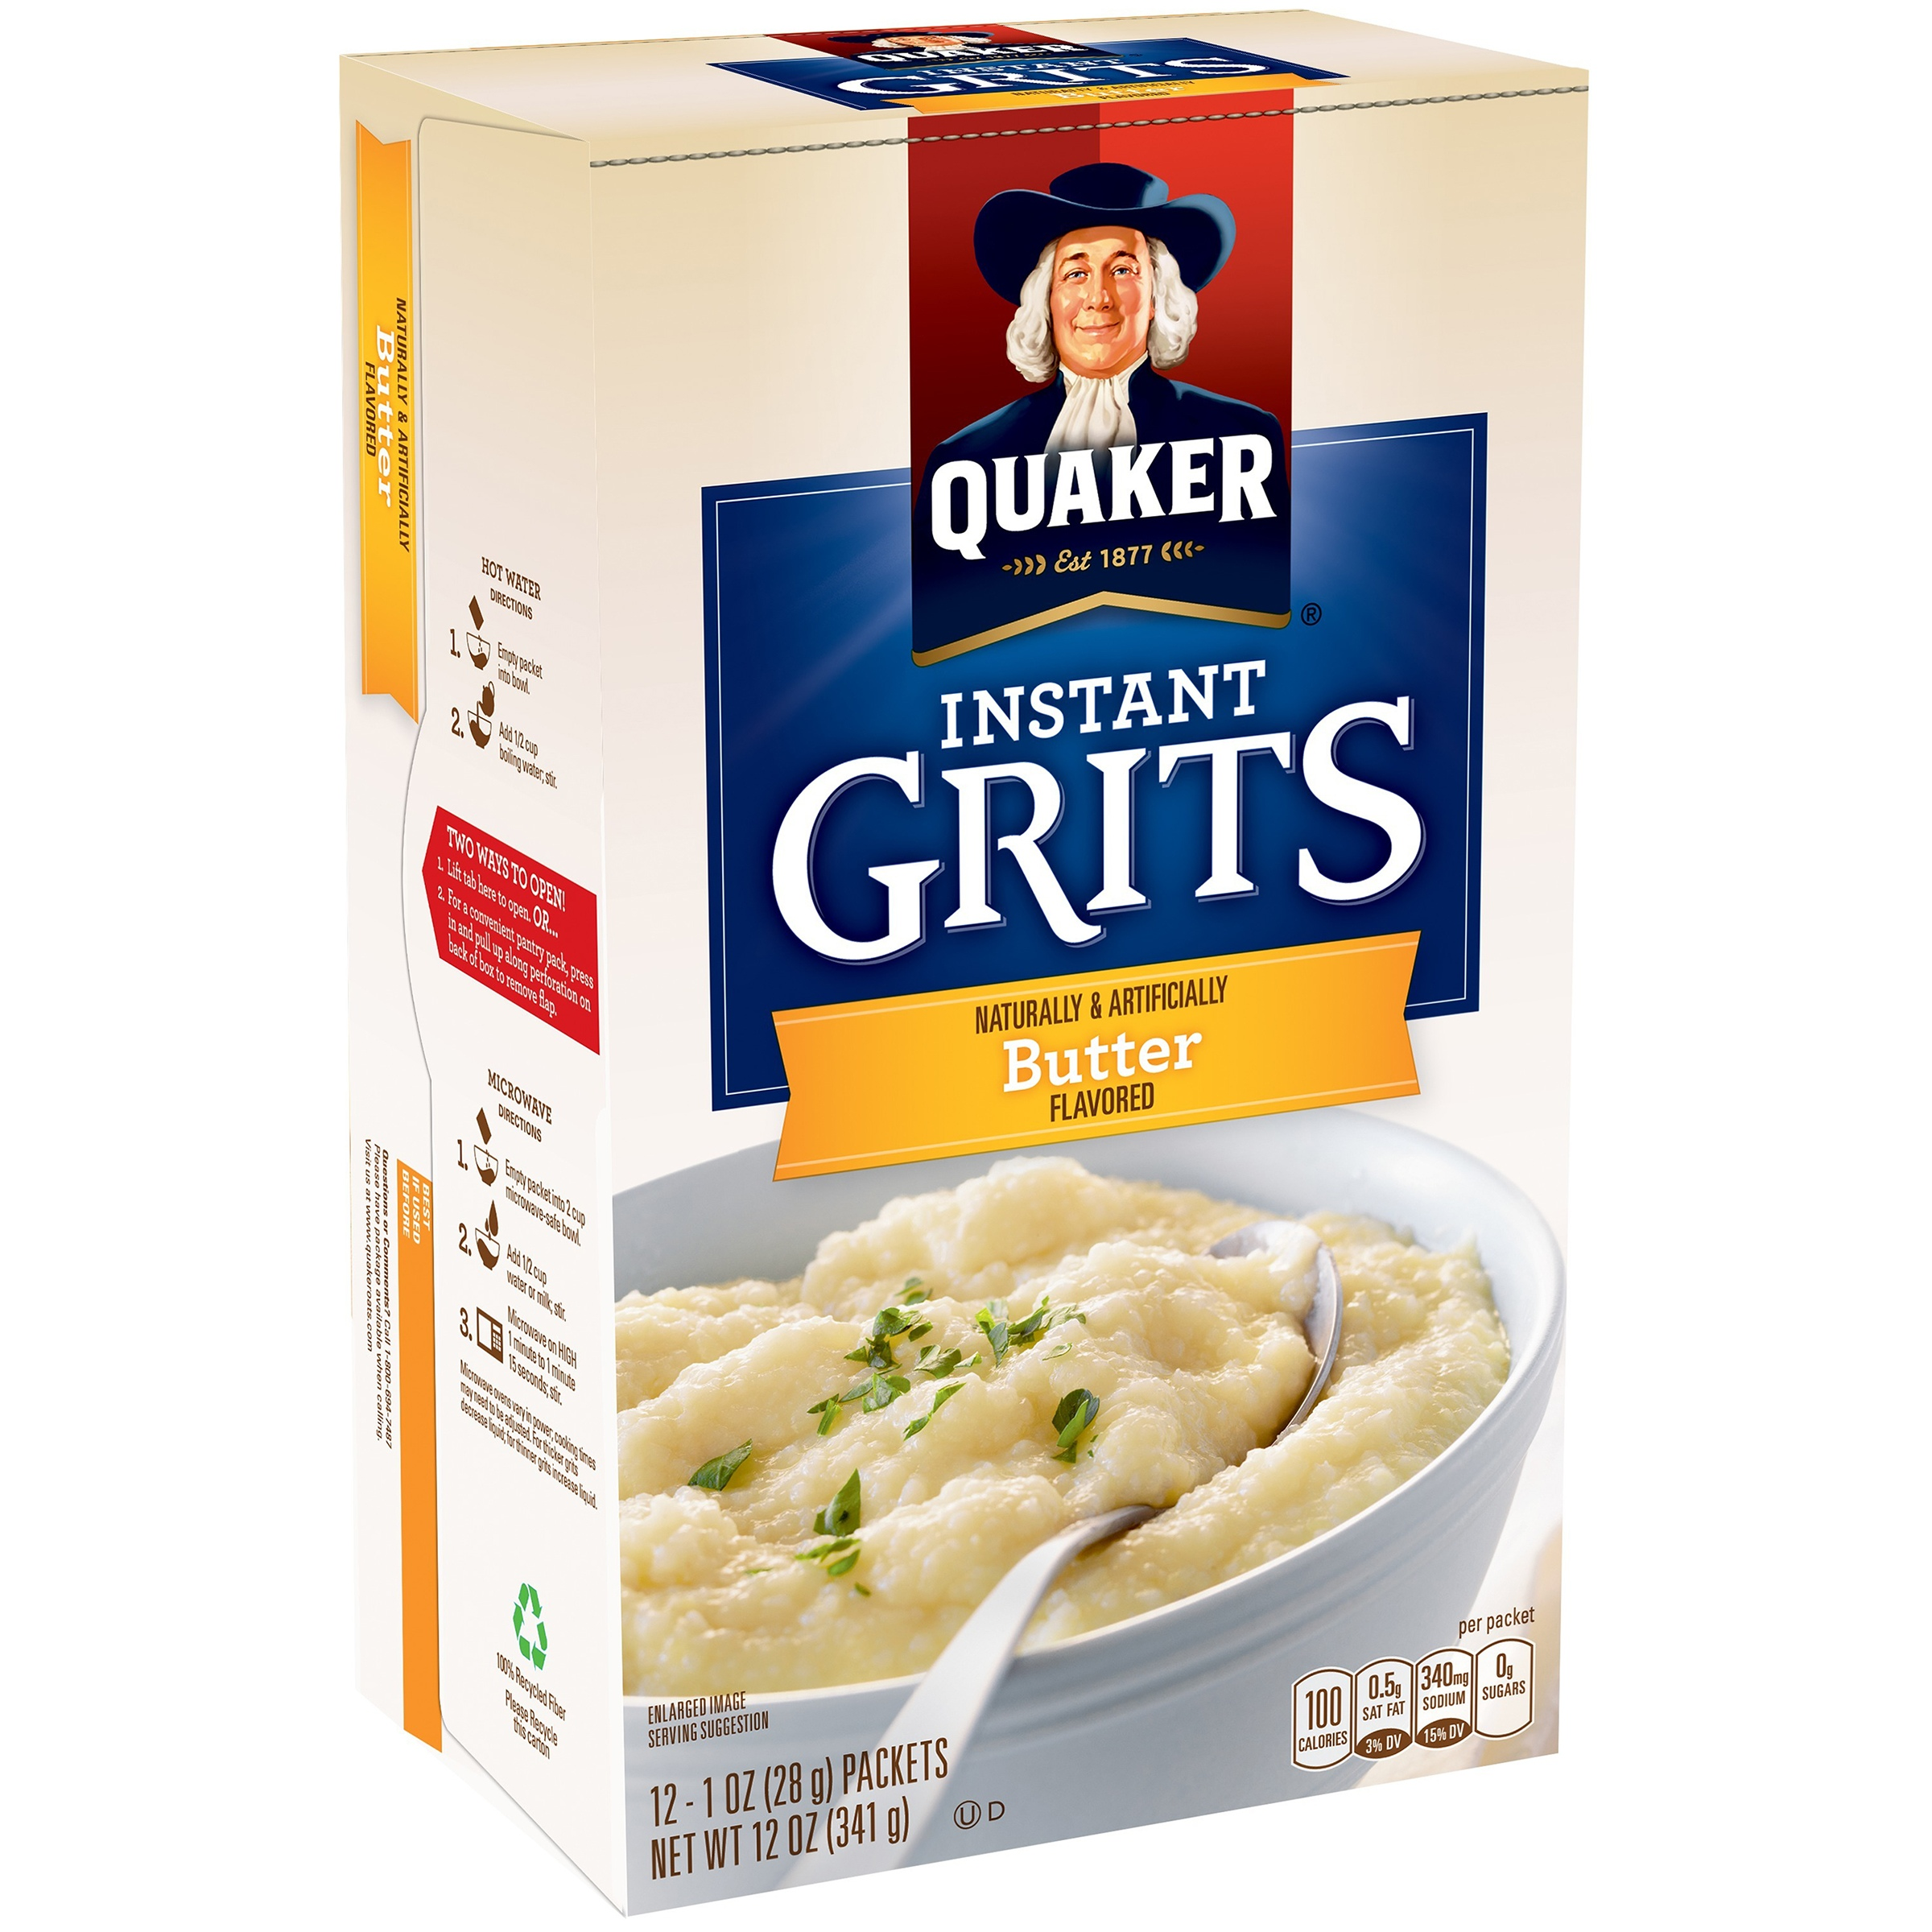 Quaker Instant Grits, Butter Flavor, 12 Count, 1 oz Packets